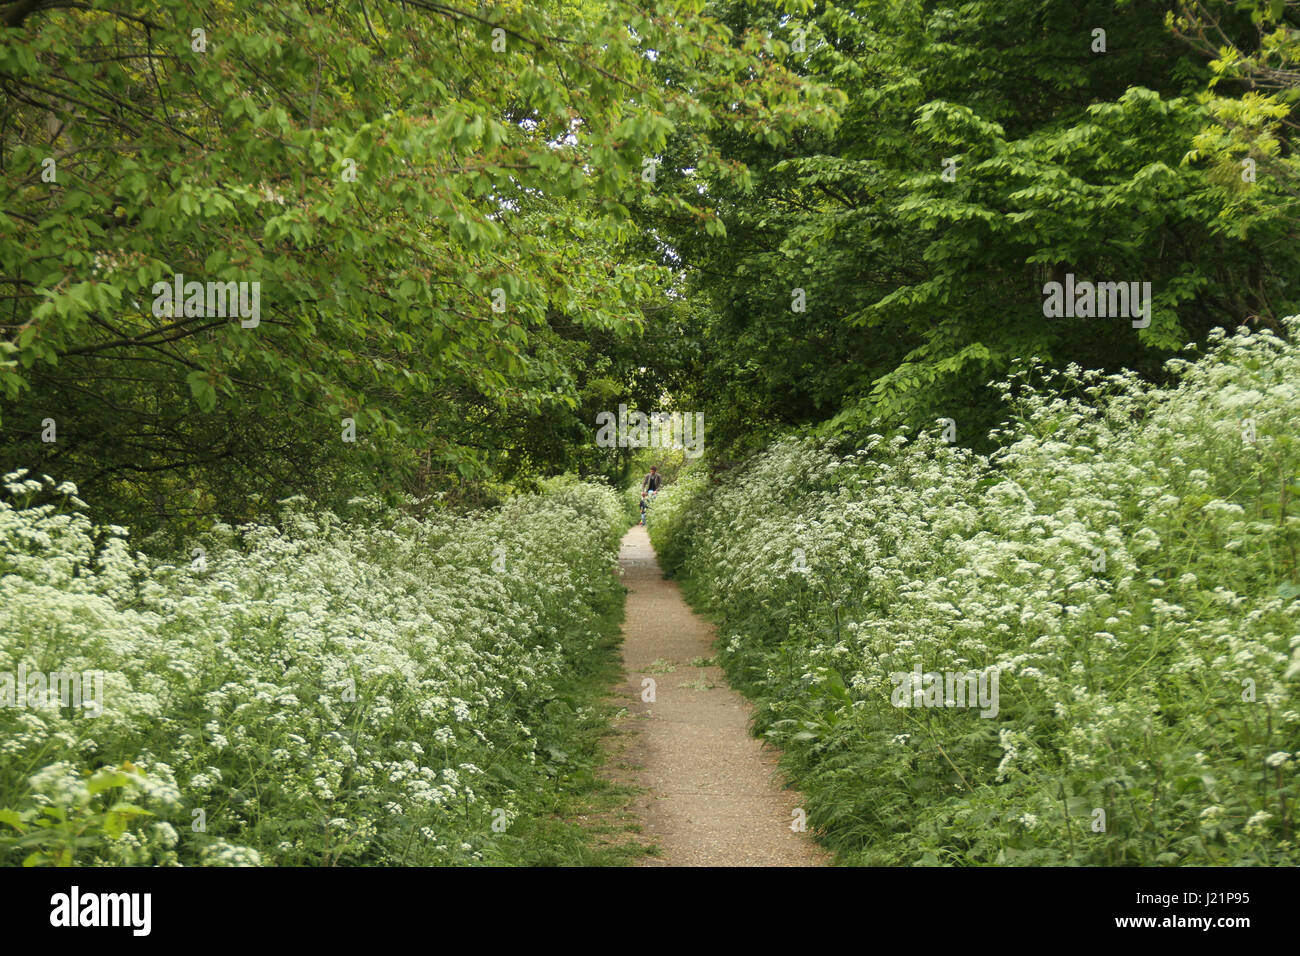 London, UK. 23rd Apr, 2017.  People seen walking through a path with wildflowers in boom on a Sunny day out at MadchuttePark - Stock Image